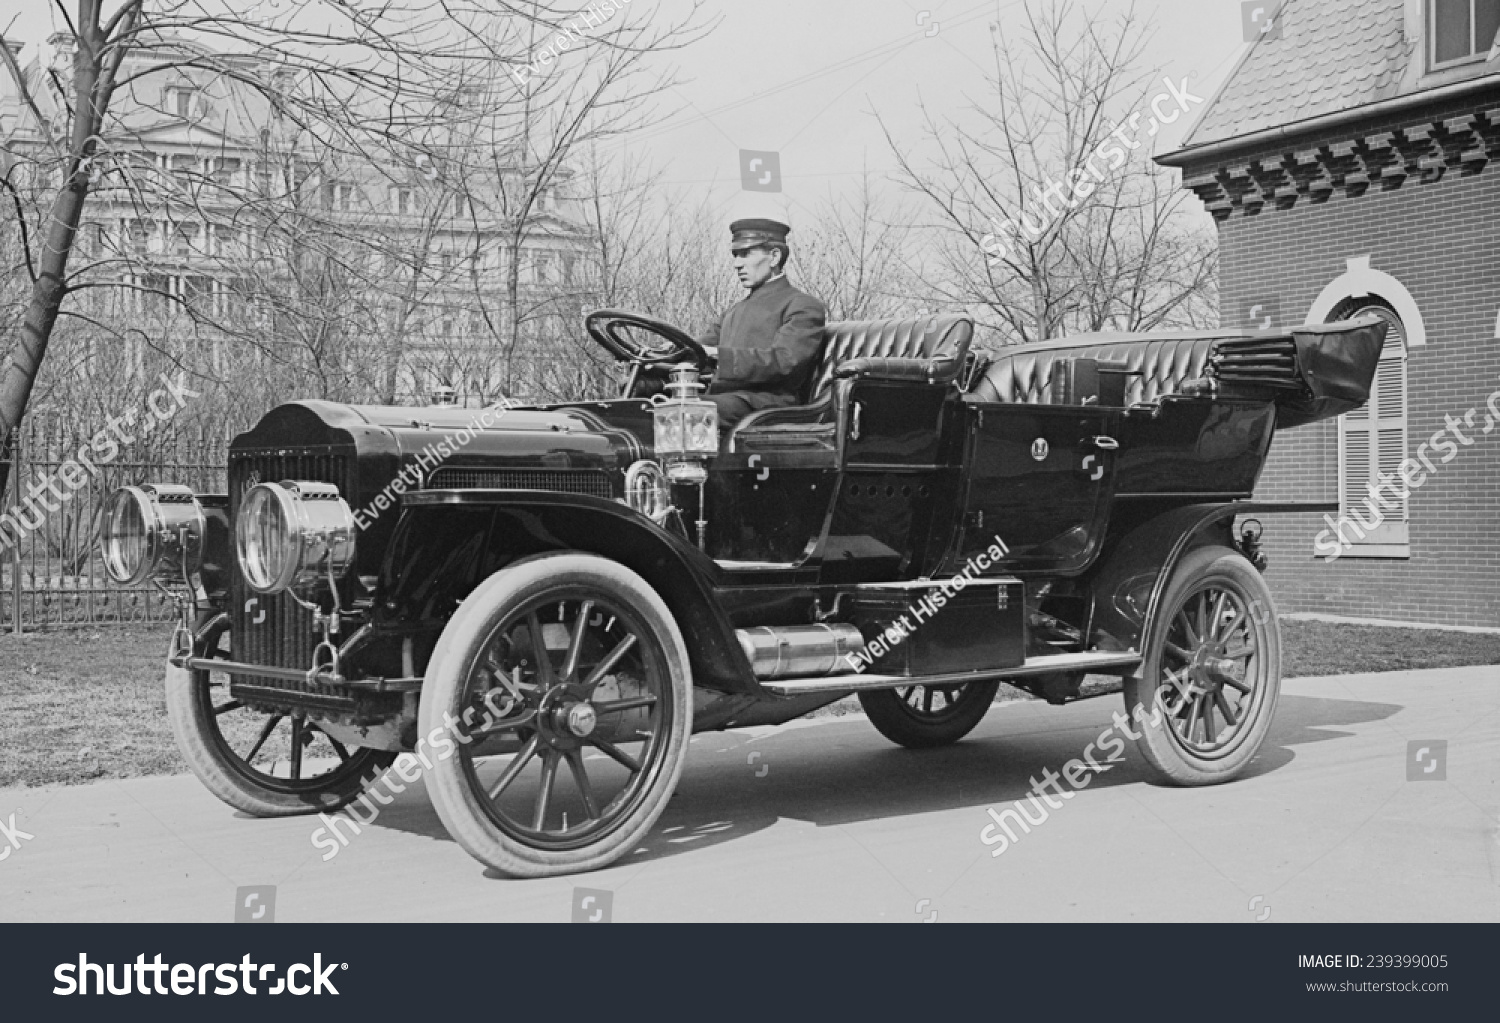 The Evolution of Car Design From 1910 to Now - The Shutterstock Blog